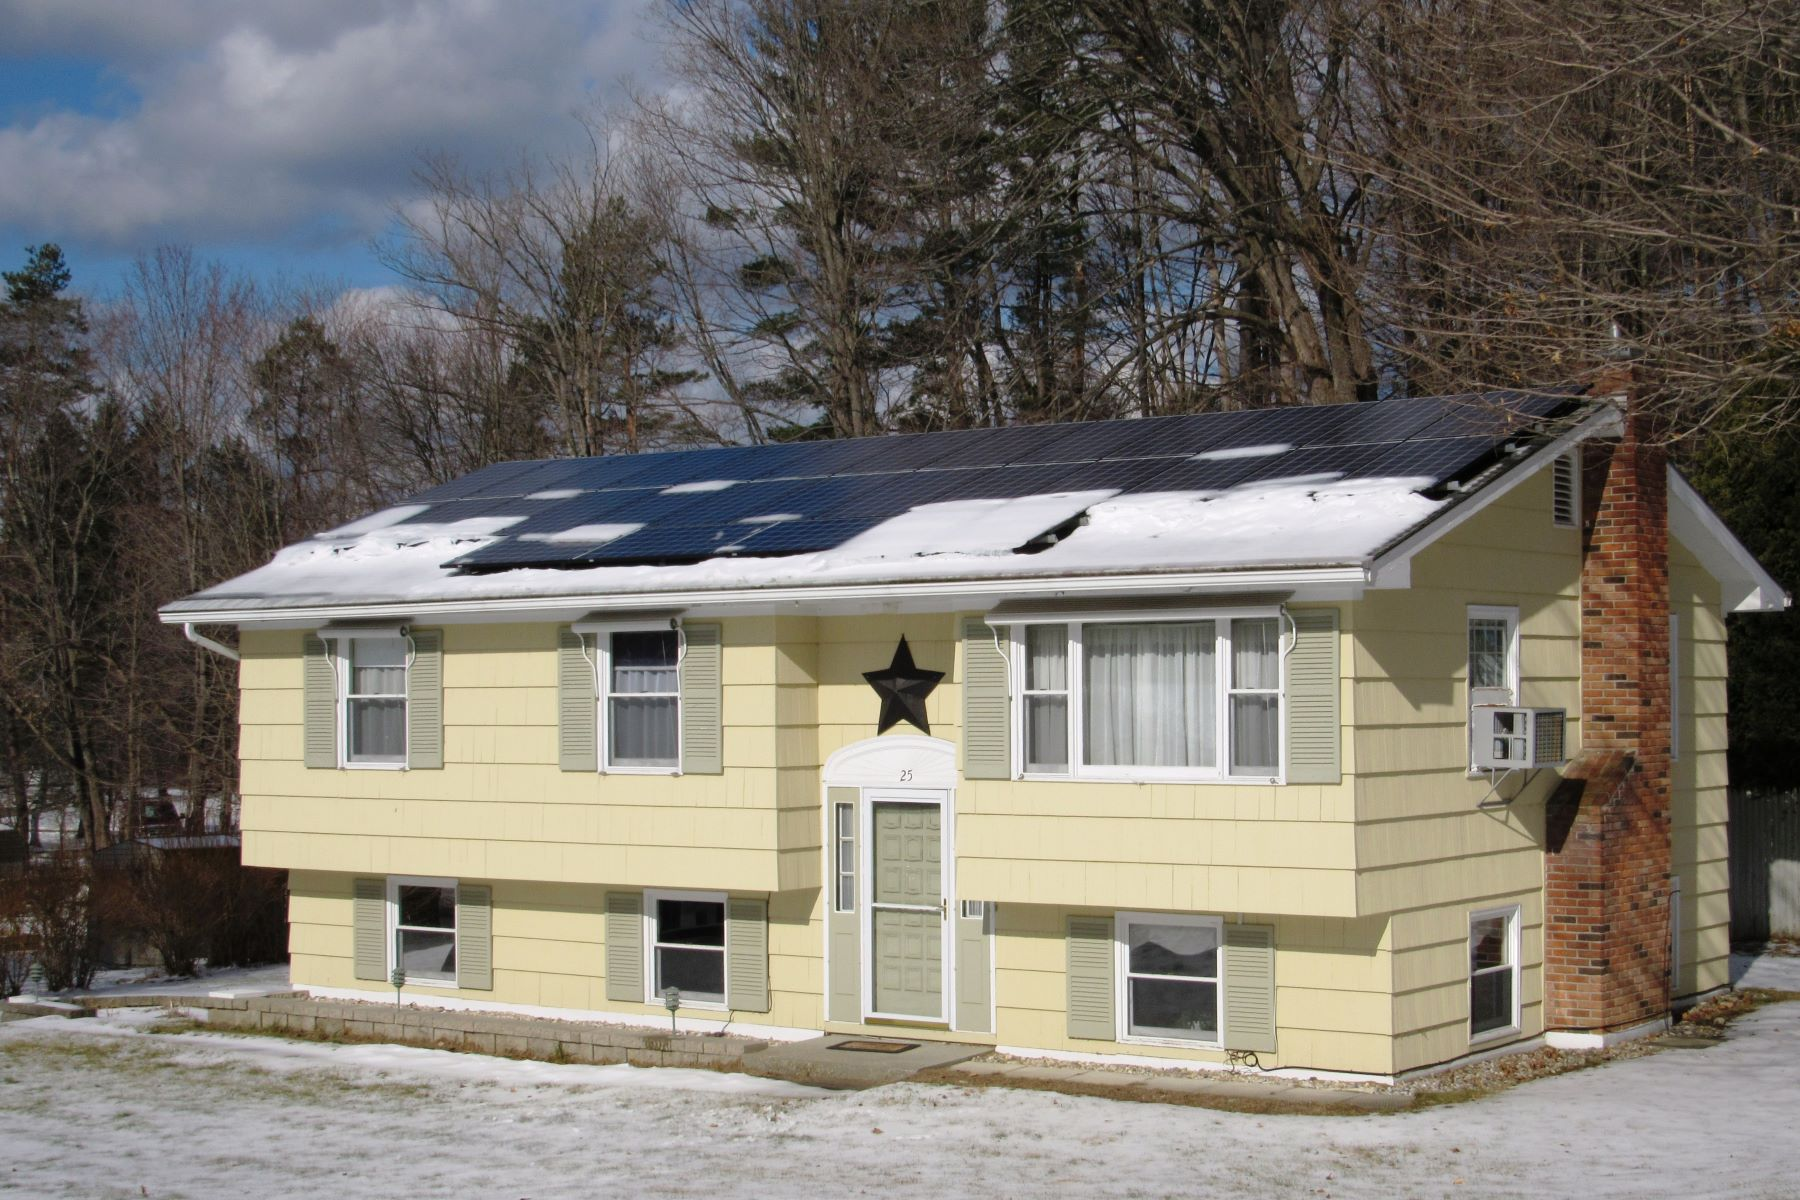 Single Family Home for Sale at Home With New Solar Panels 25 Pine Ridge Dr Lee, Massachusetts 01238 United States